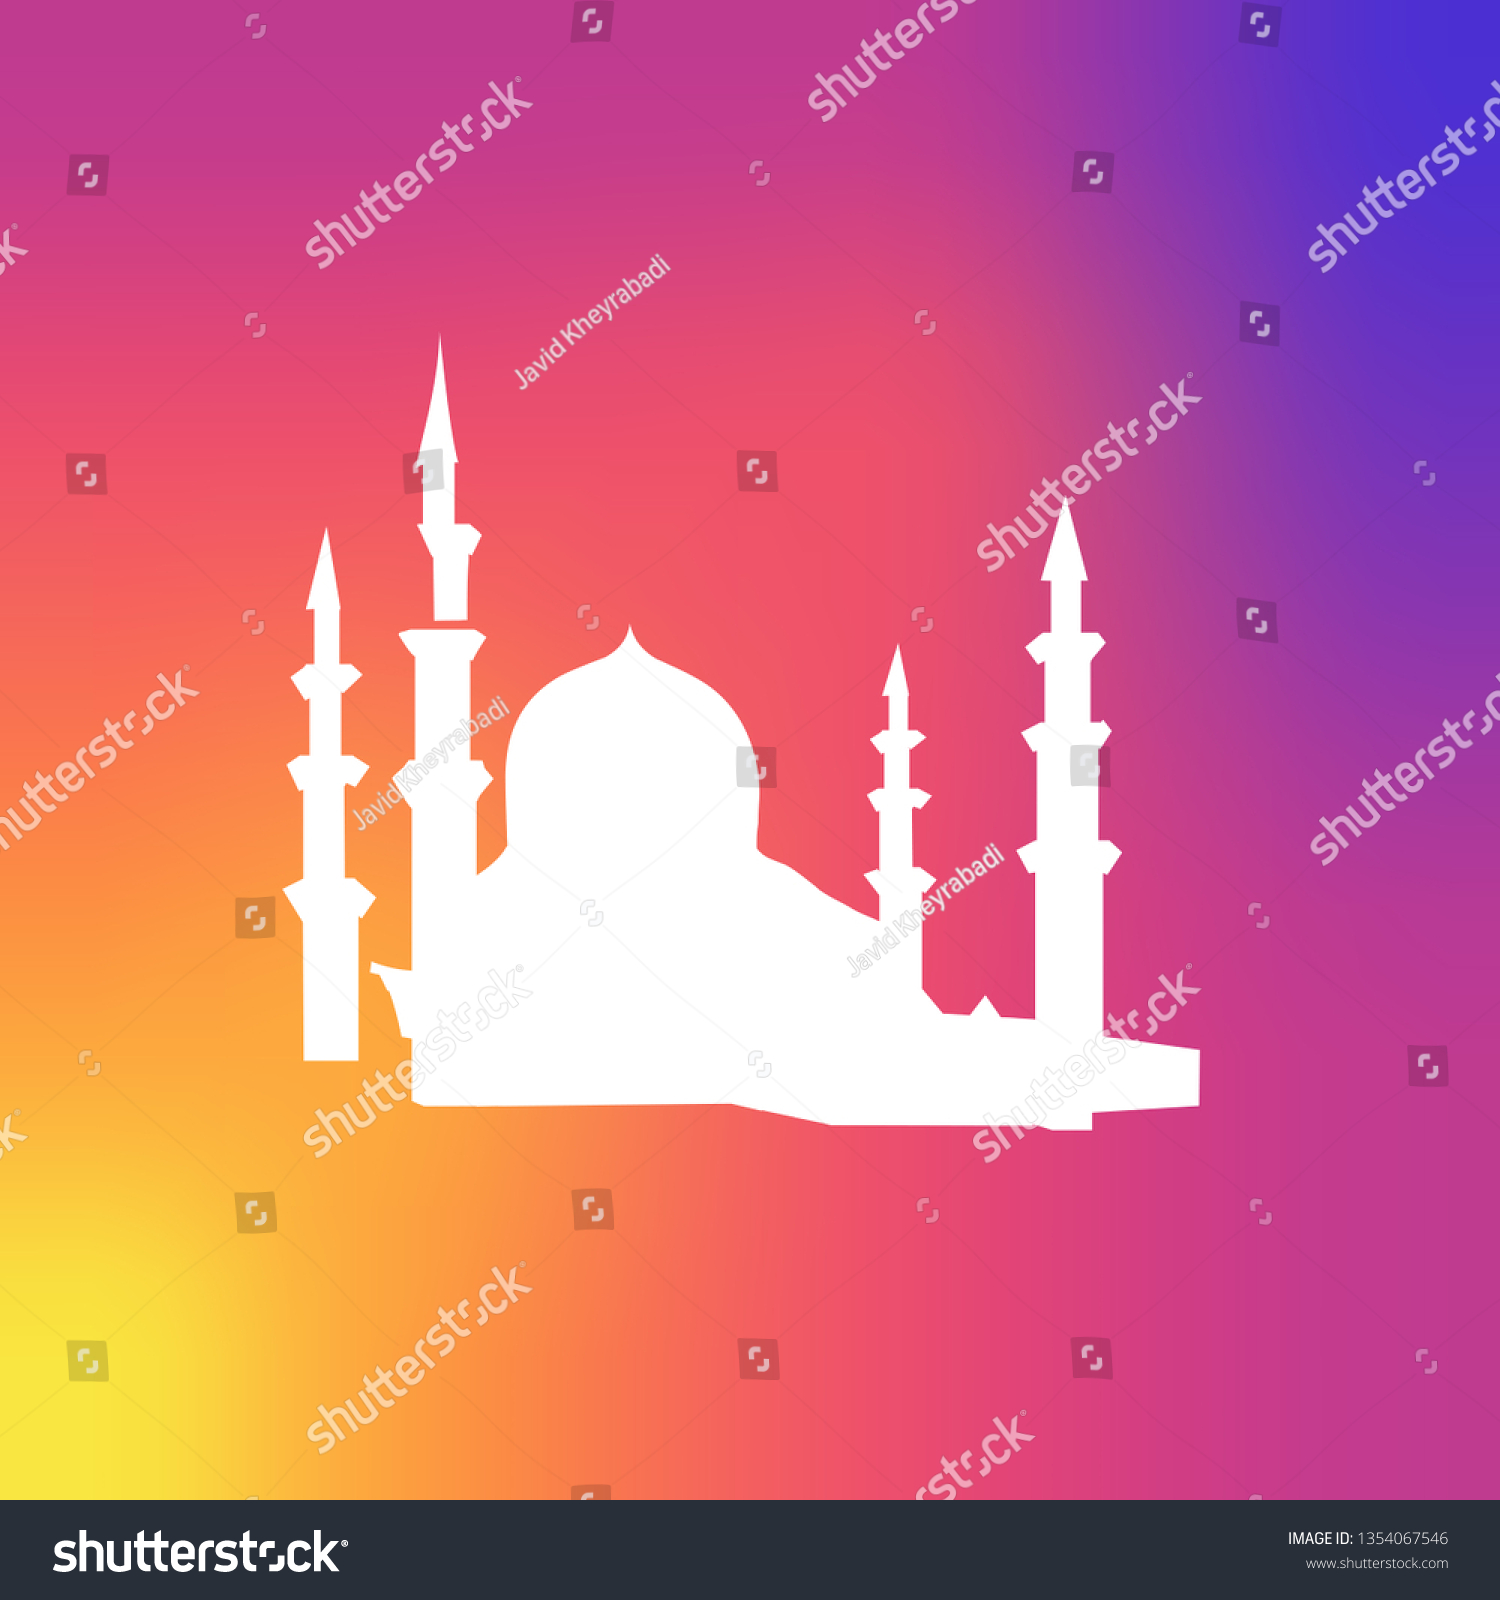 mosque icon islam icon stock vector royalty free 1354067546 shutterstock